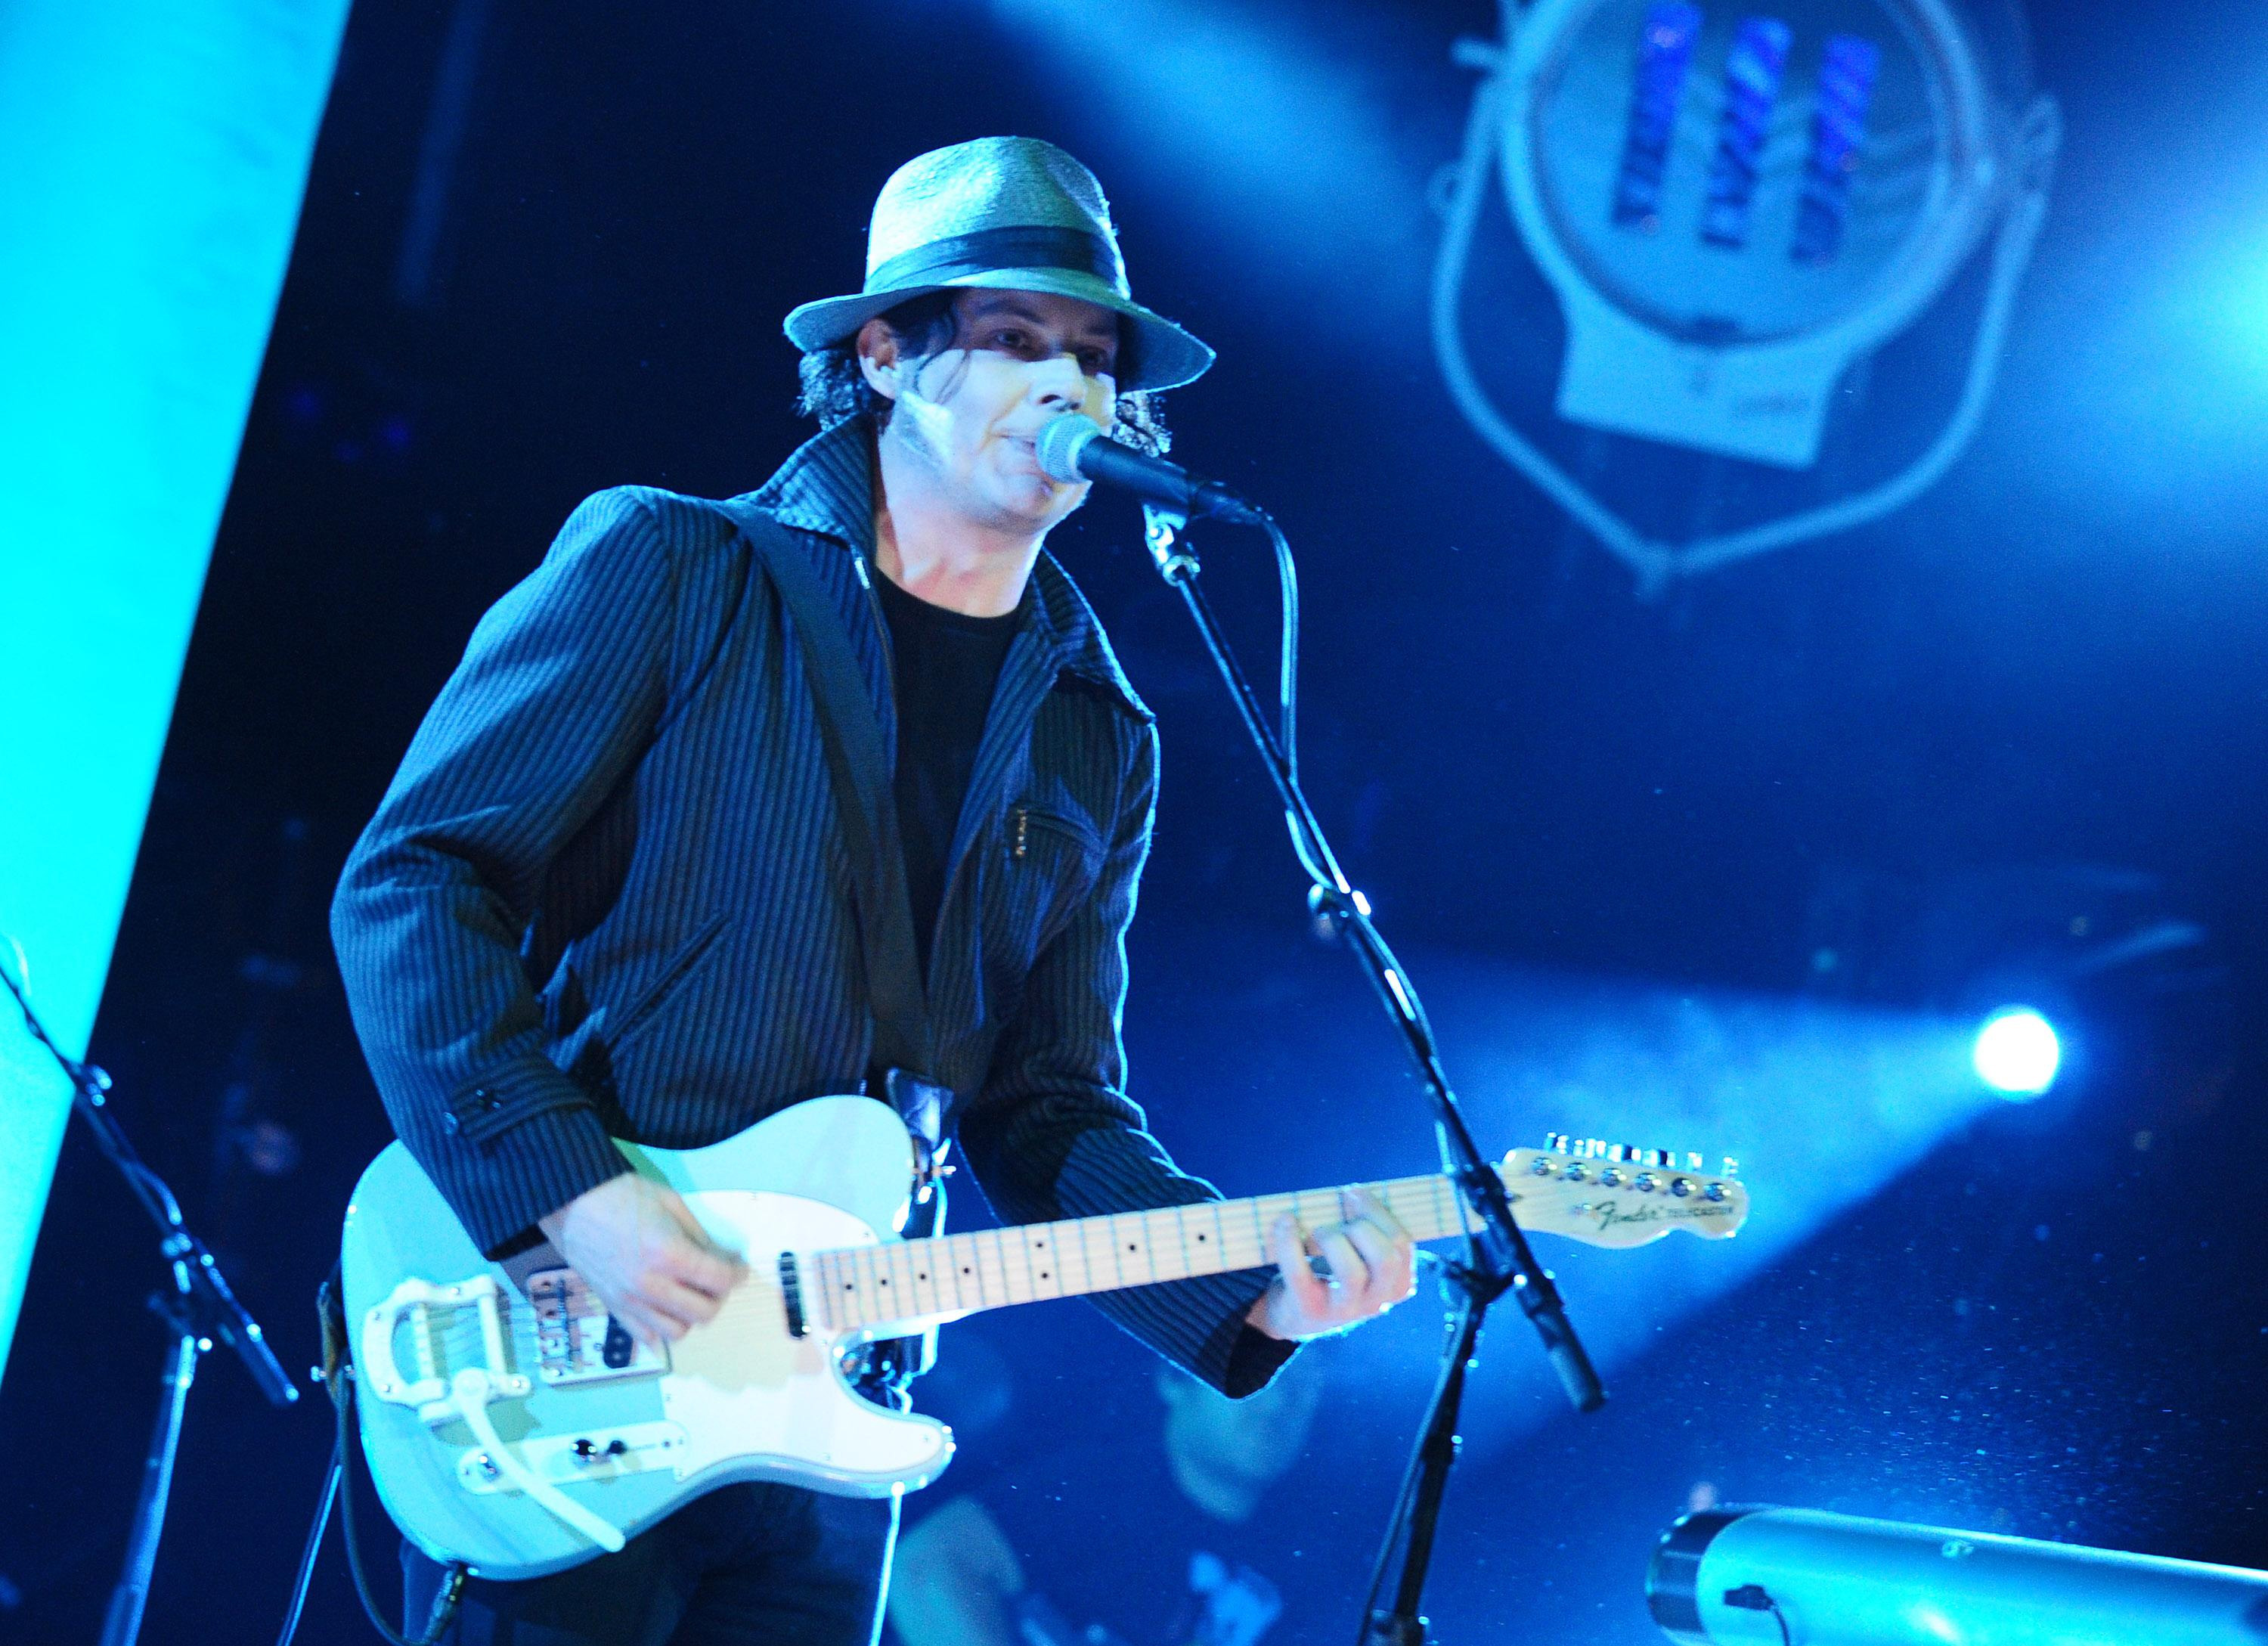 Jack White bans phones from shows to create